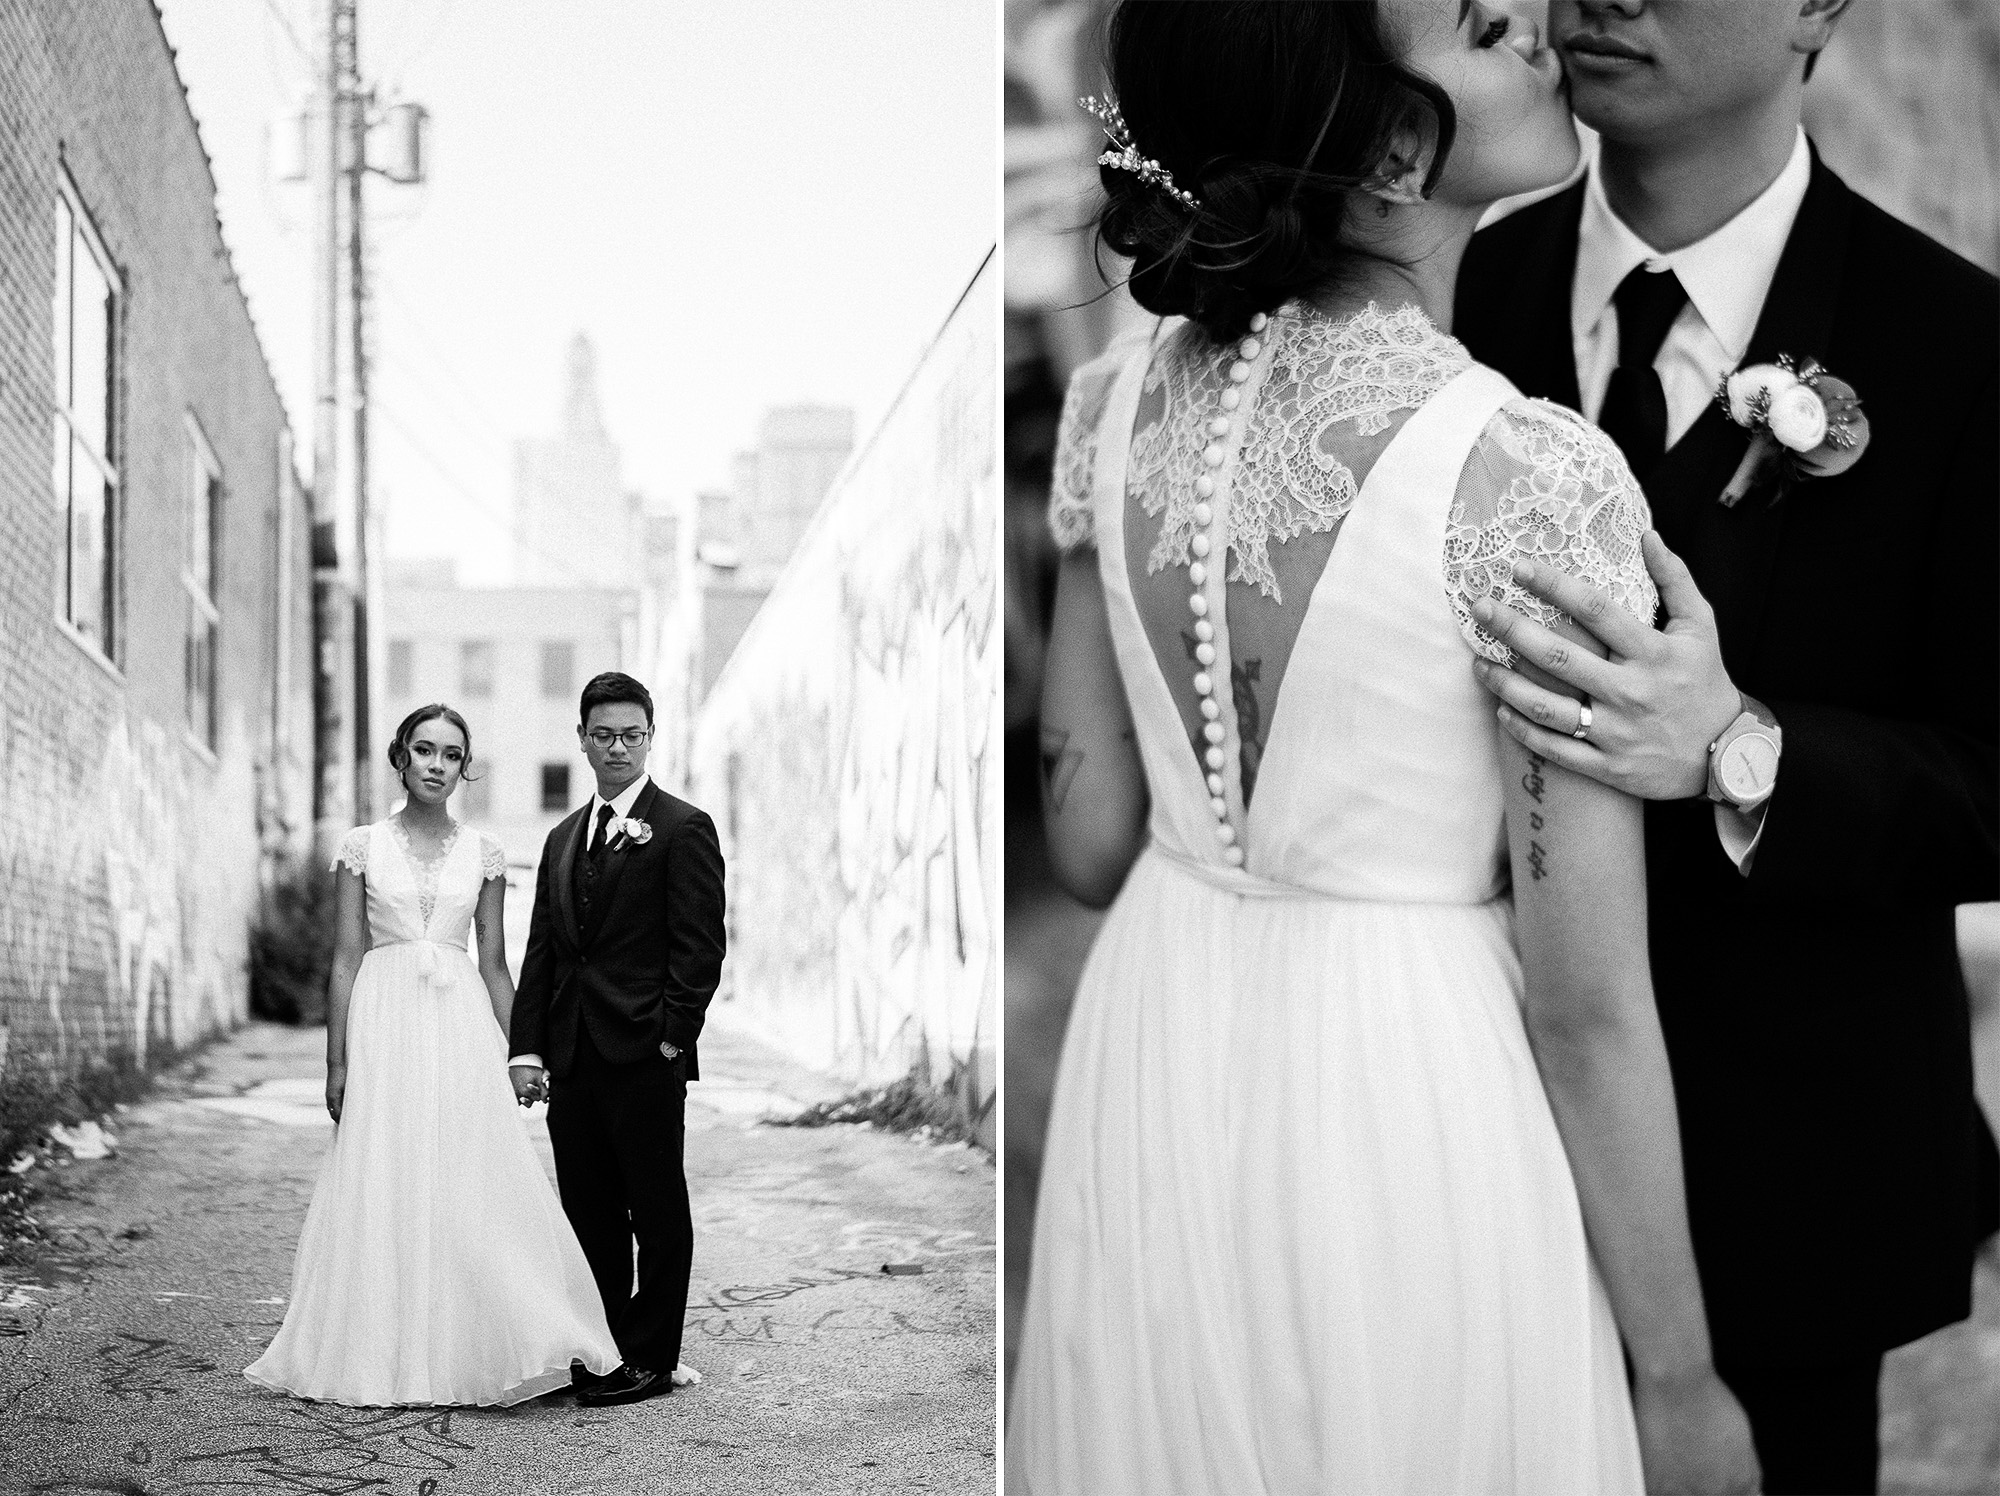 An & Myleen's Kansas City Wedding Photographs, by Photographer Rusty Wright.